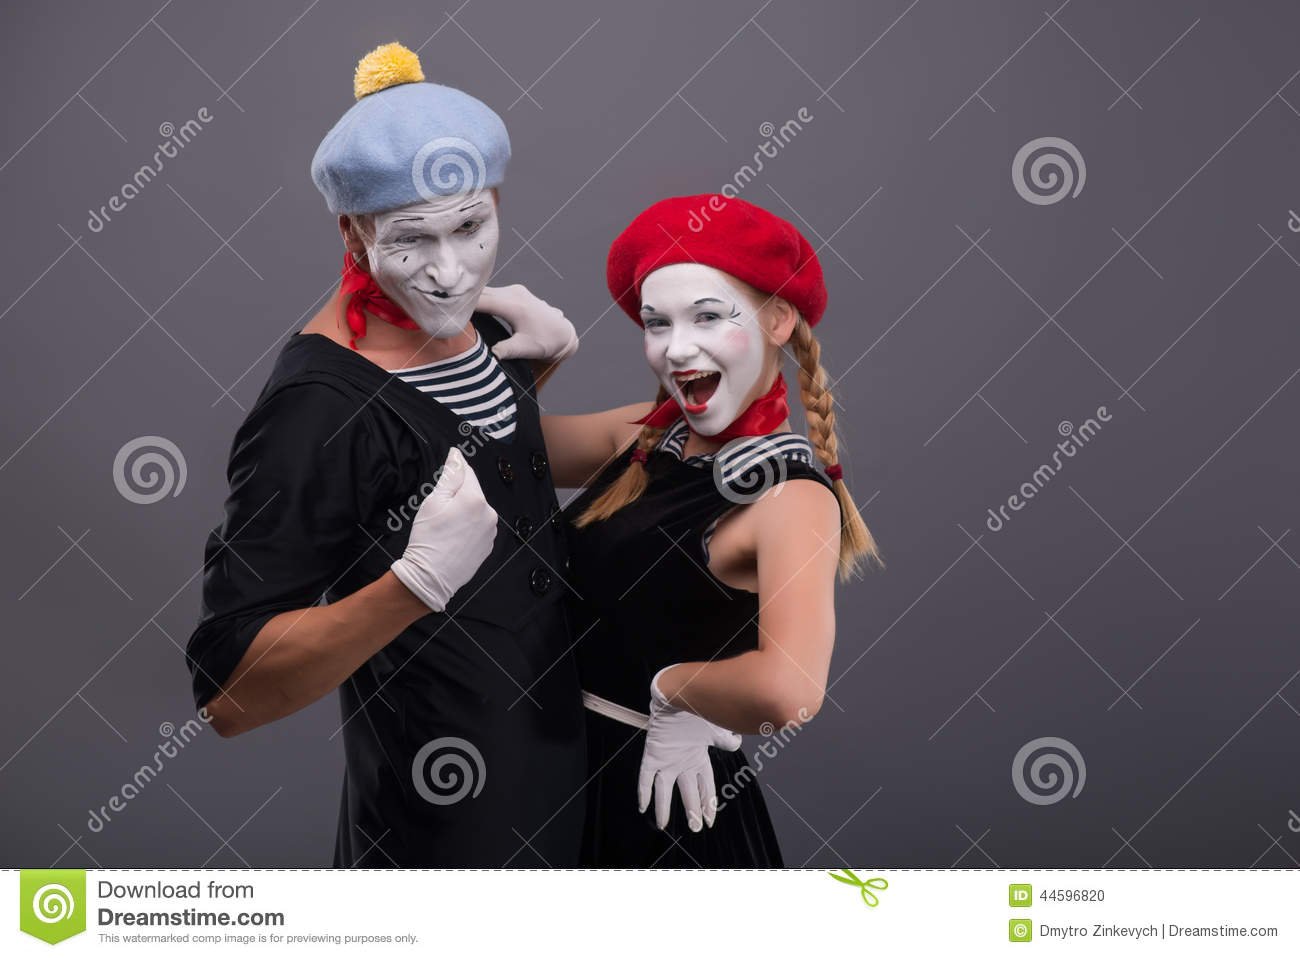 ac28de46c40 Portrait Of Funny Mime Couple With White Faces And Stock Photo ...